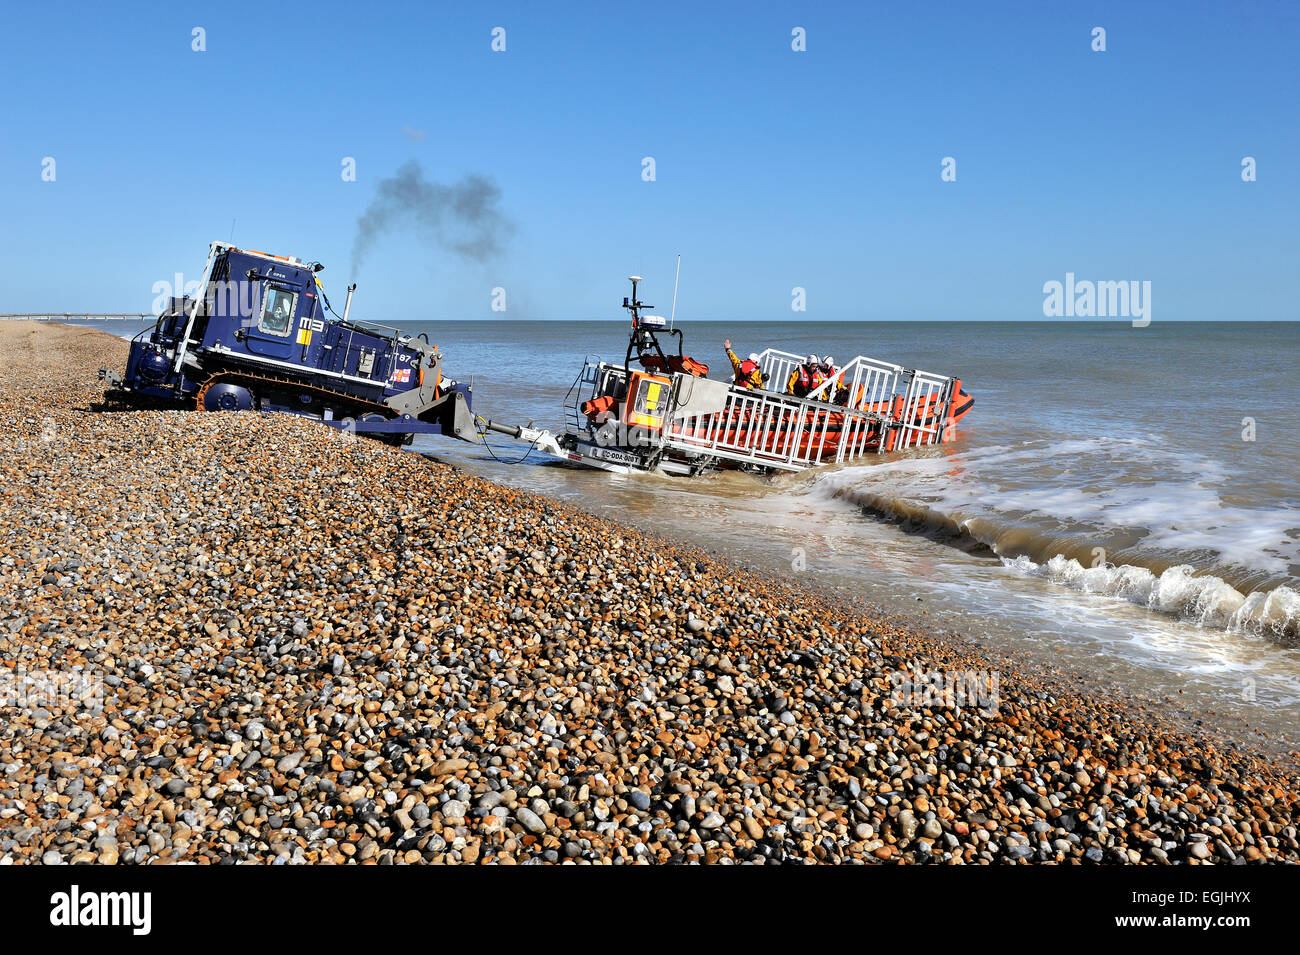 tractor retrieving lifeboat from the sea - Stock Image